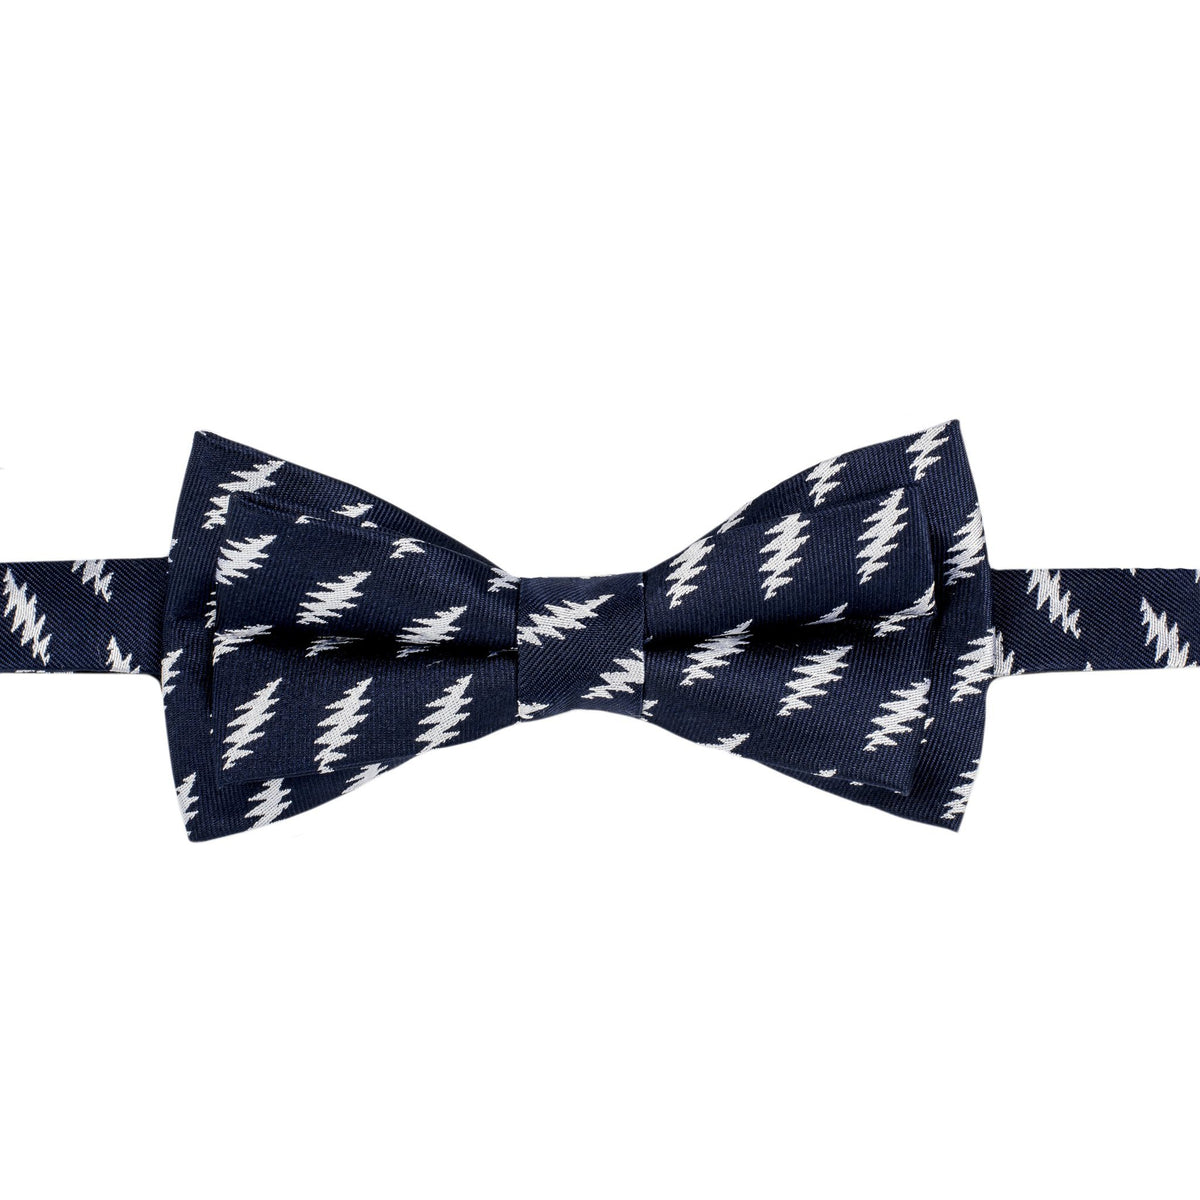 Grateful Dead Navy All Over Bolt Bow Tie (pre-tied) - Section 119